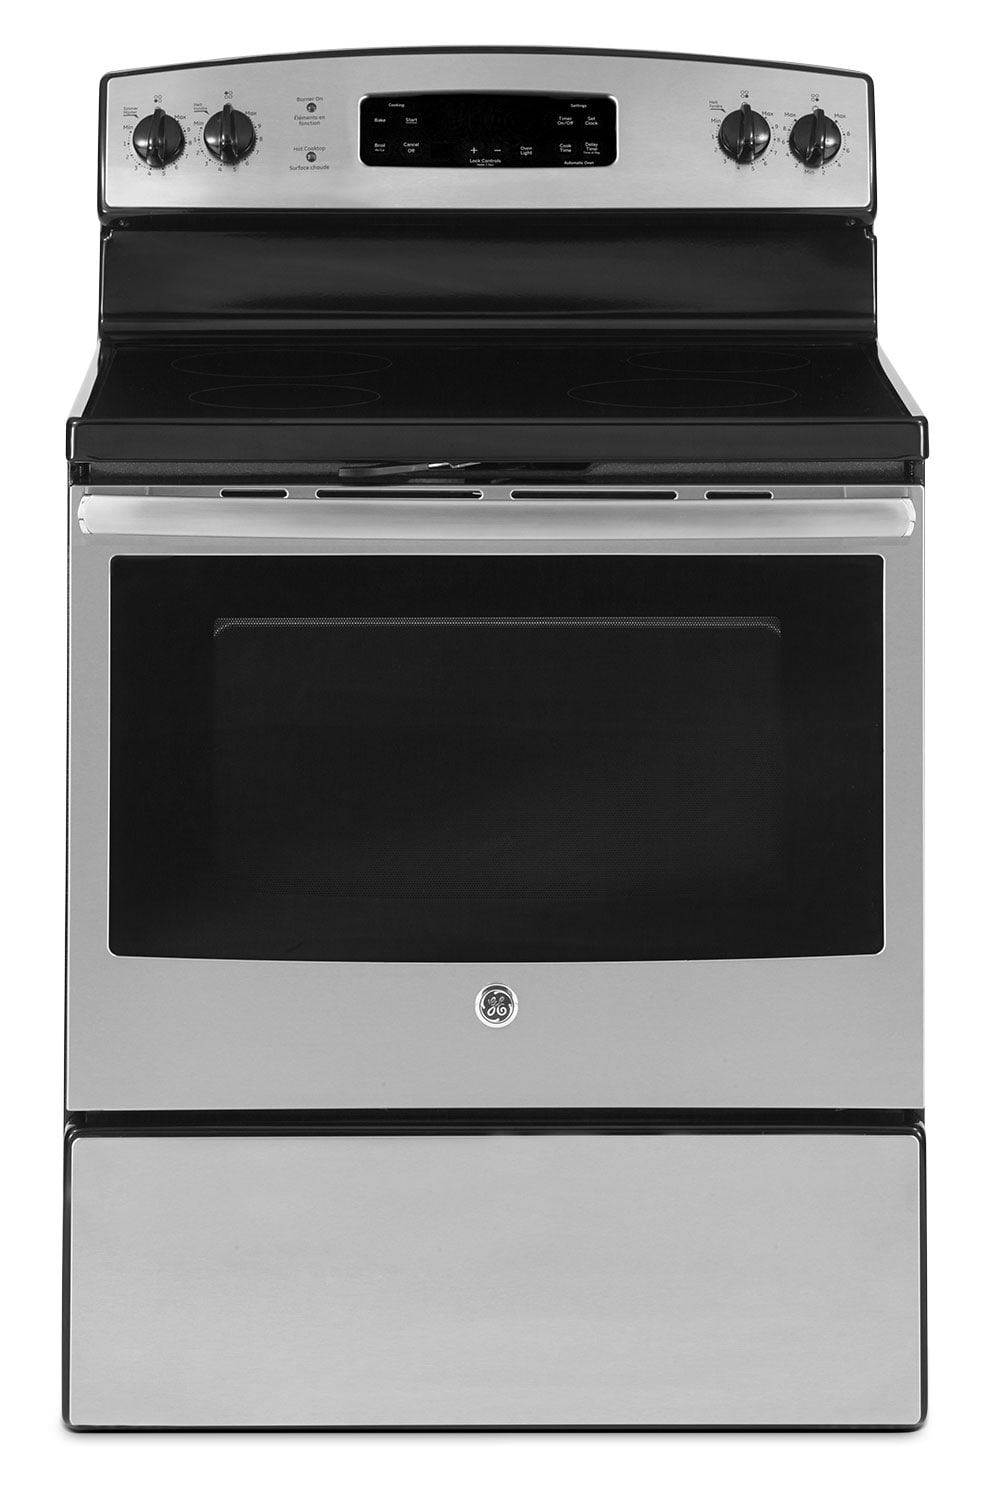 Cooking Products - GE 5.0 Cu. Ft. Freestanding Electric Range – Stainless Steel